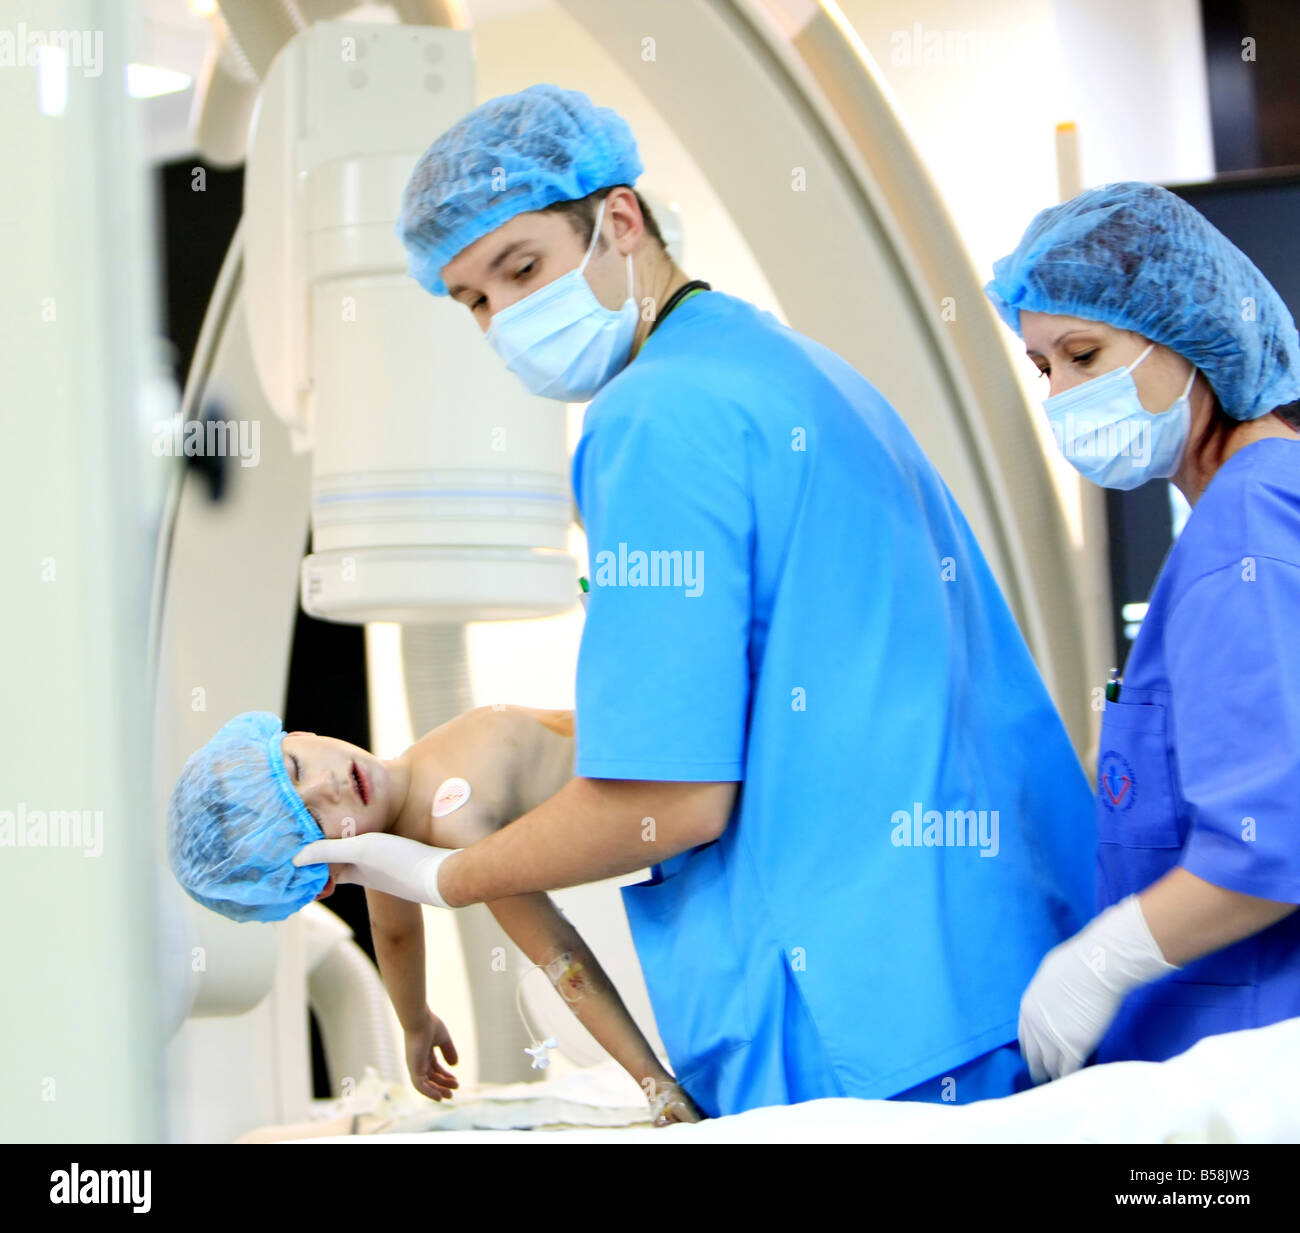 Doctor take care of a boy at operating room - Stock Image